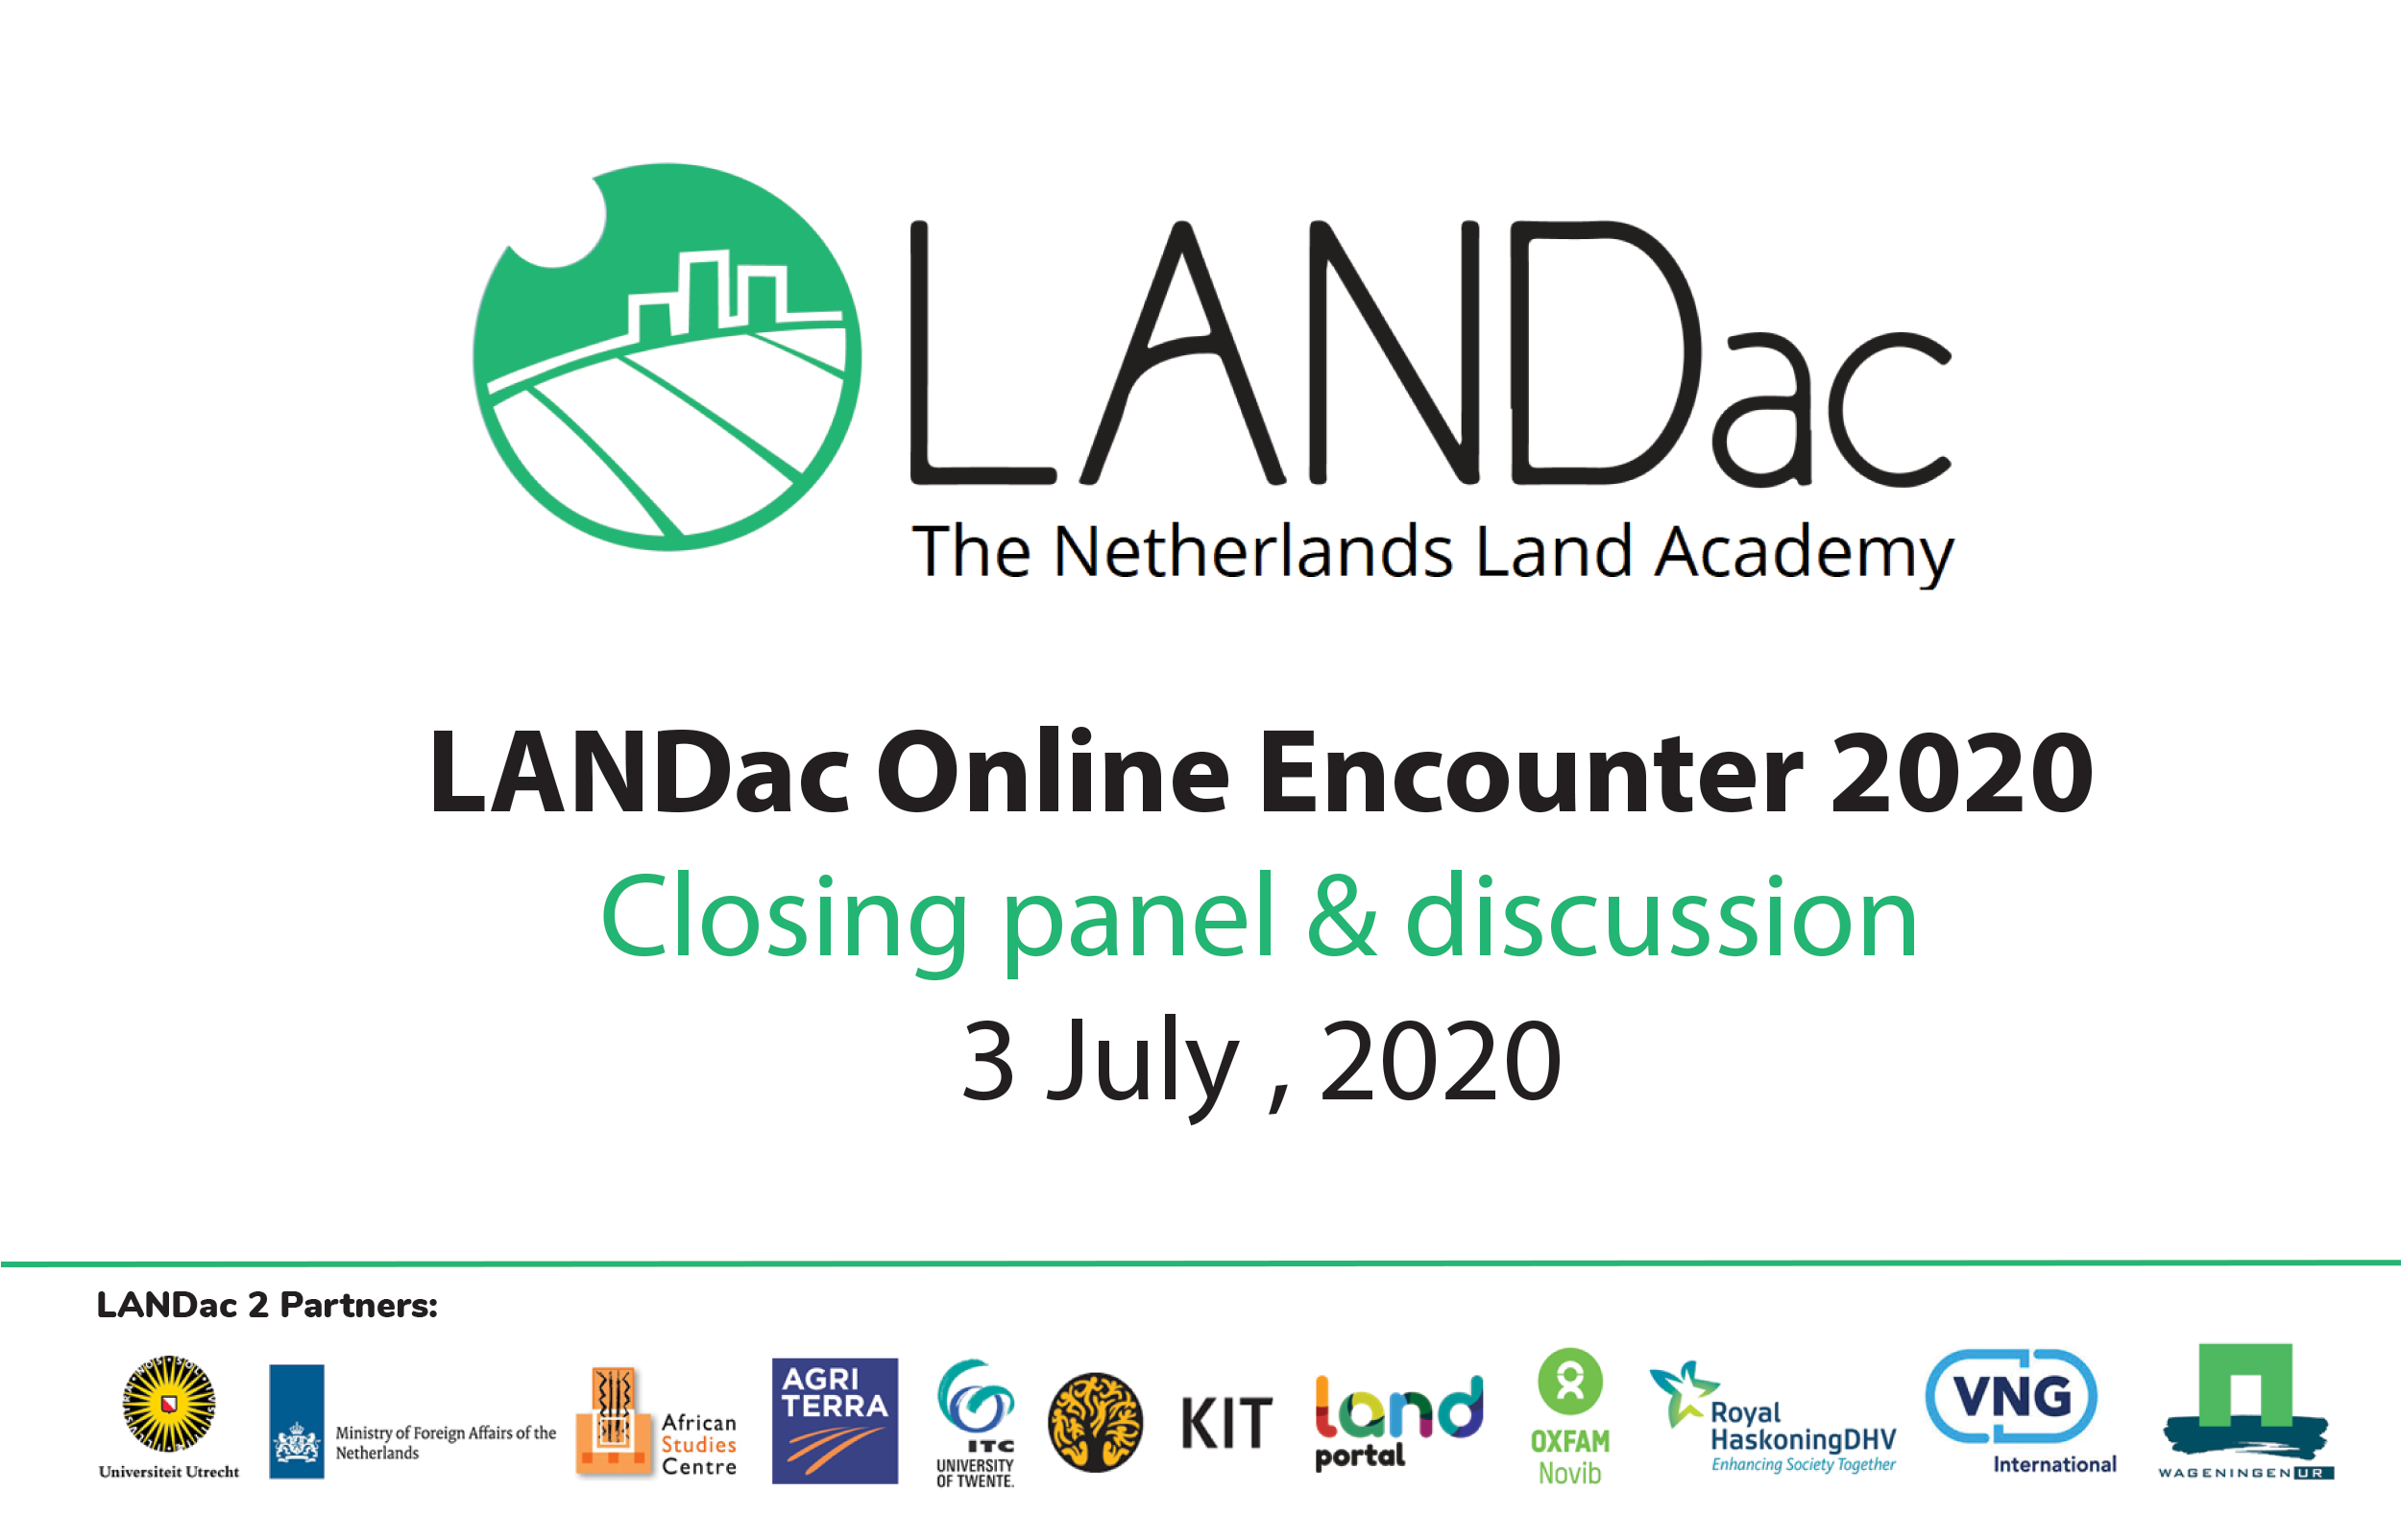 LANDac Online Encounter 2020: Closing panel & discussion